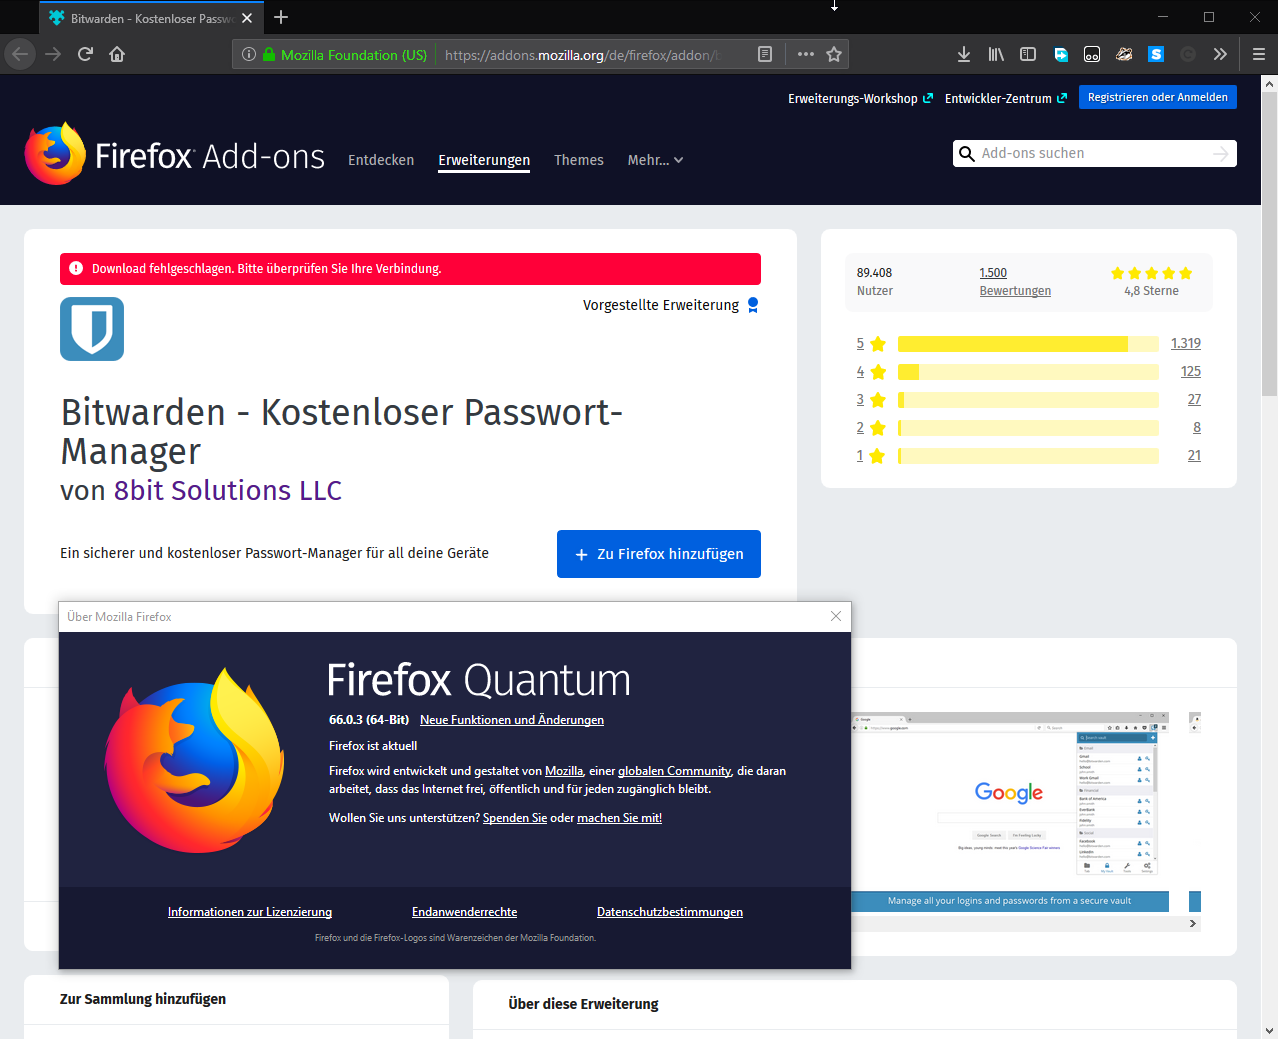 Unable to install on Firefox 66 0 03 - User-to-User Support